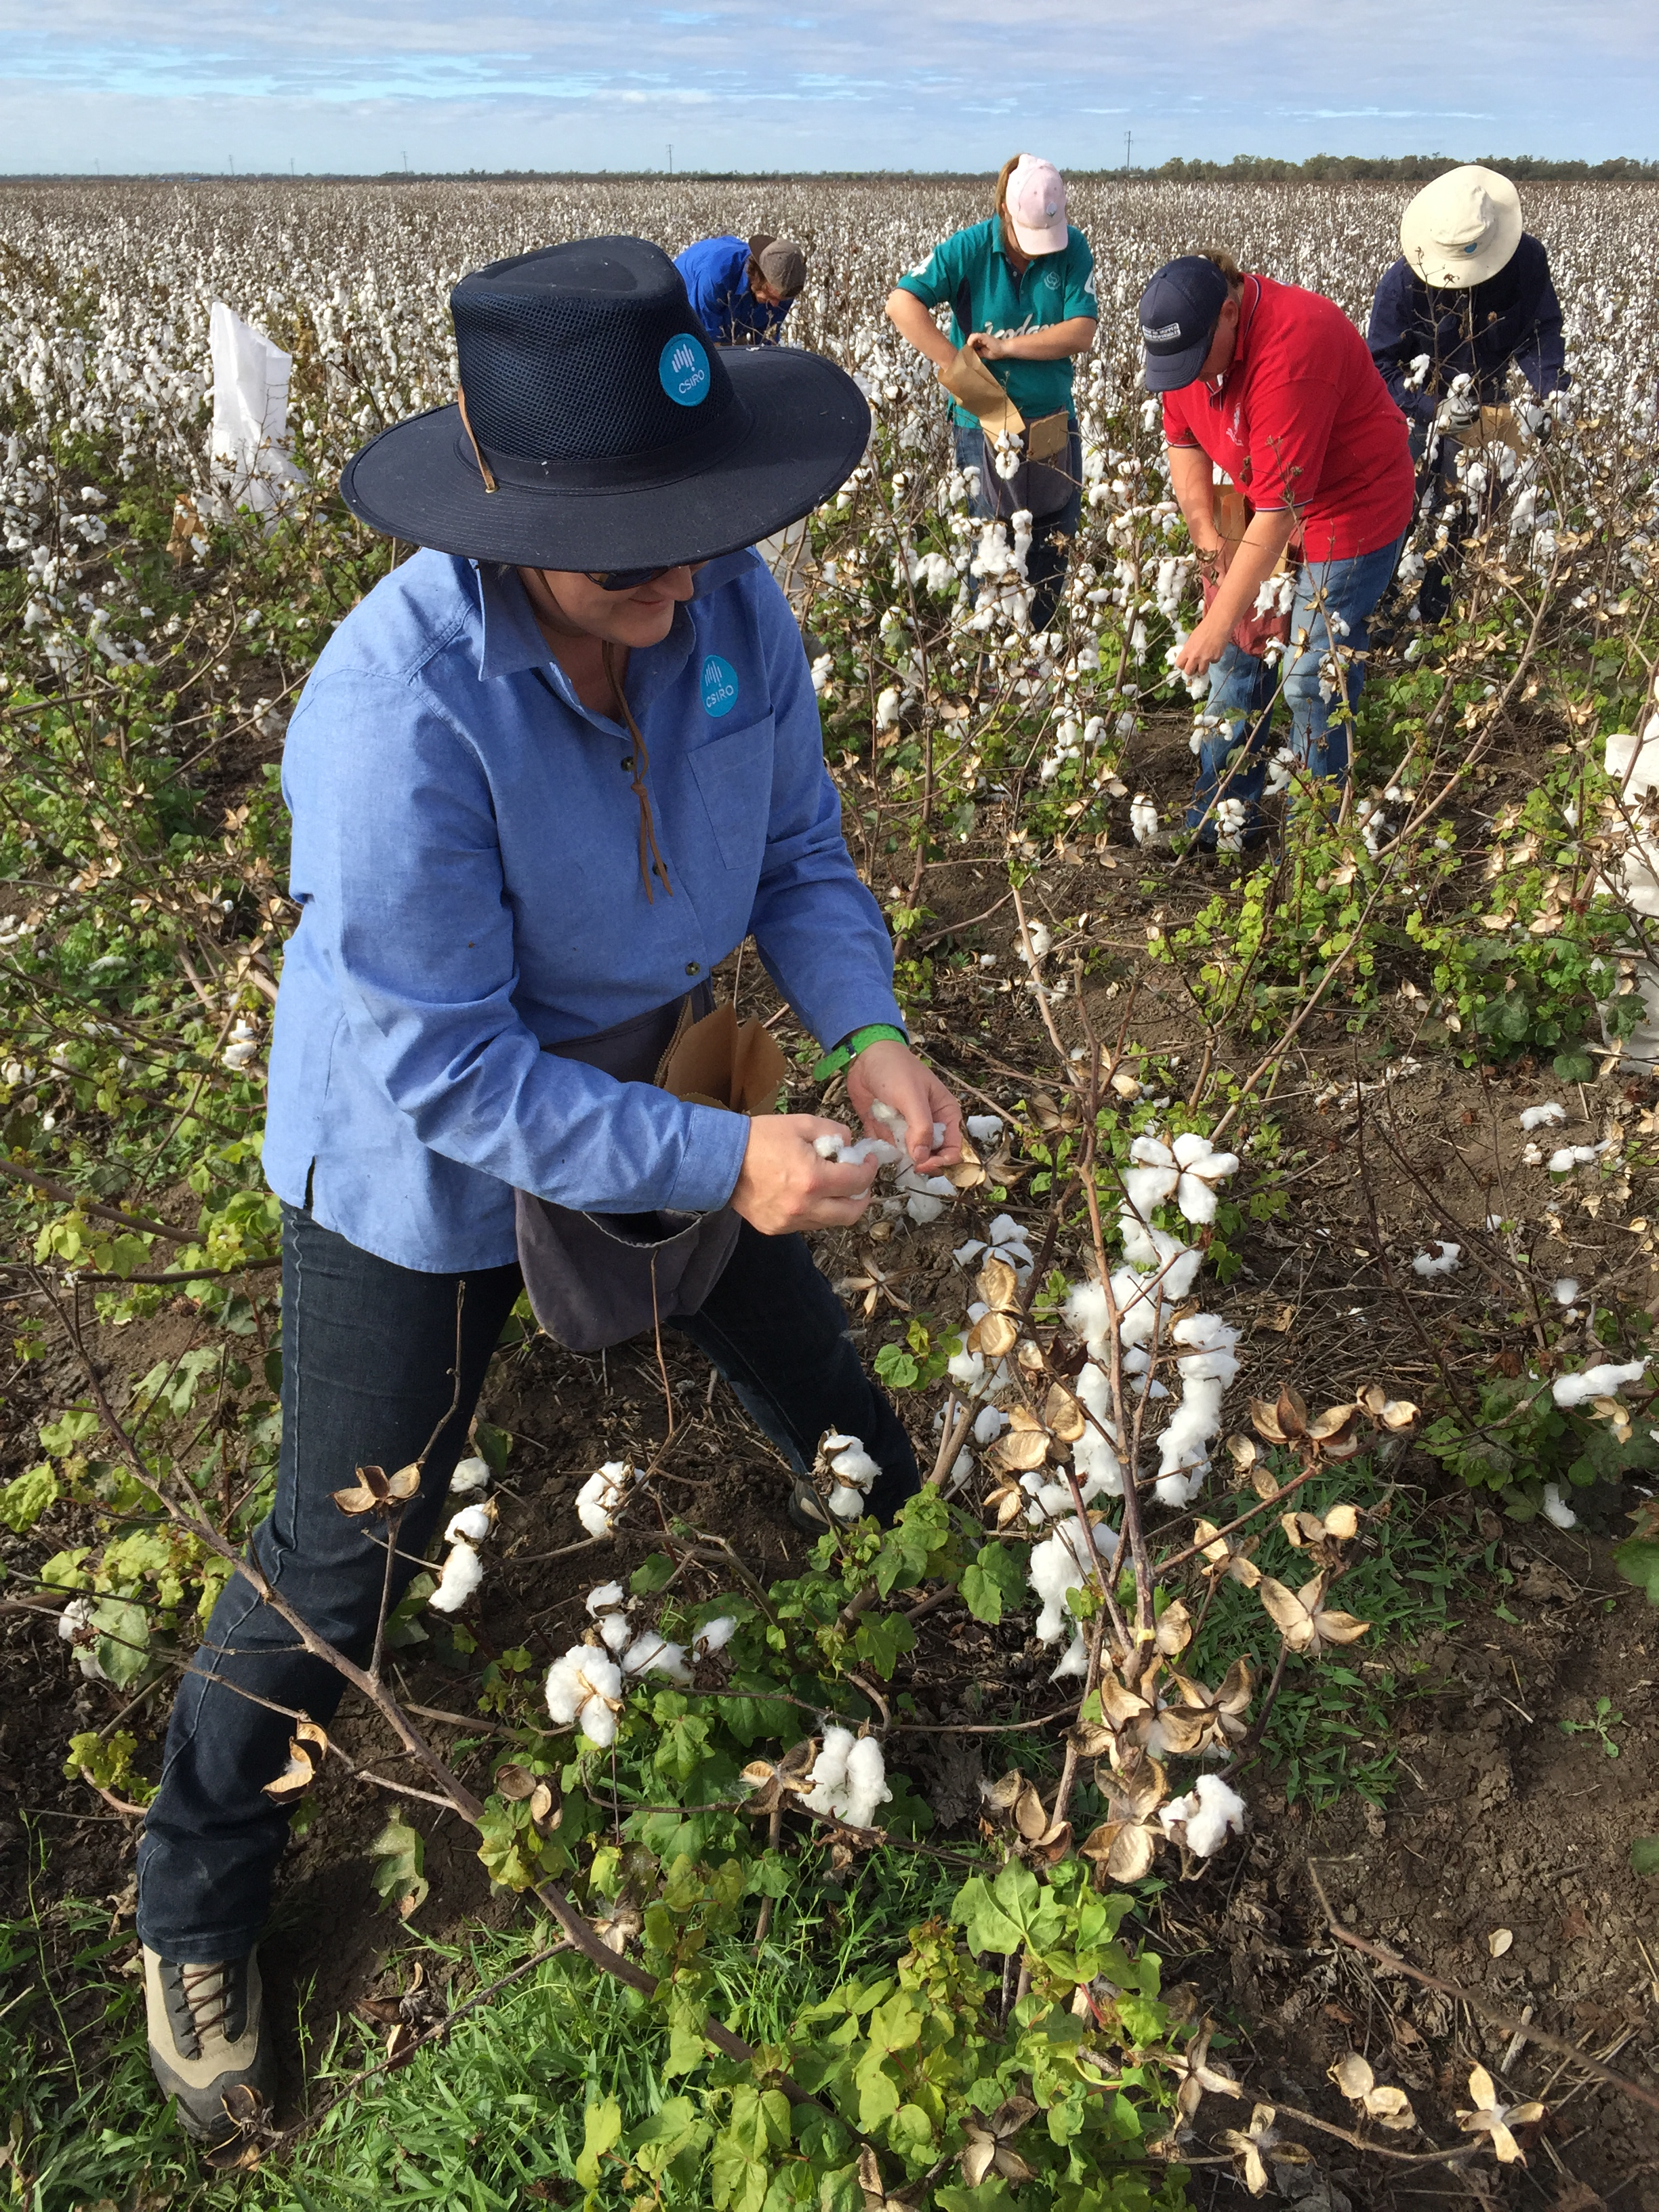 Heather Campbell working with team on cotton field.